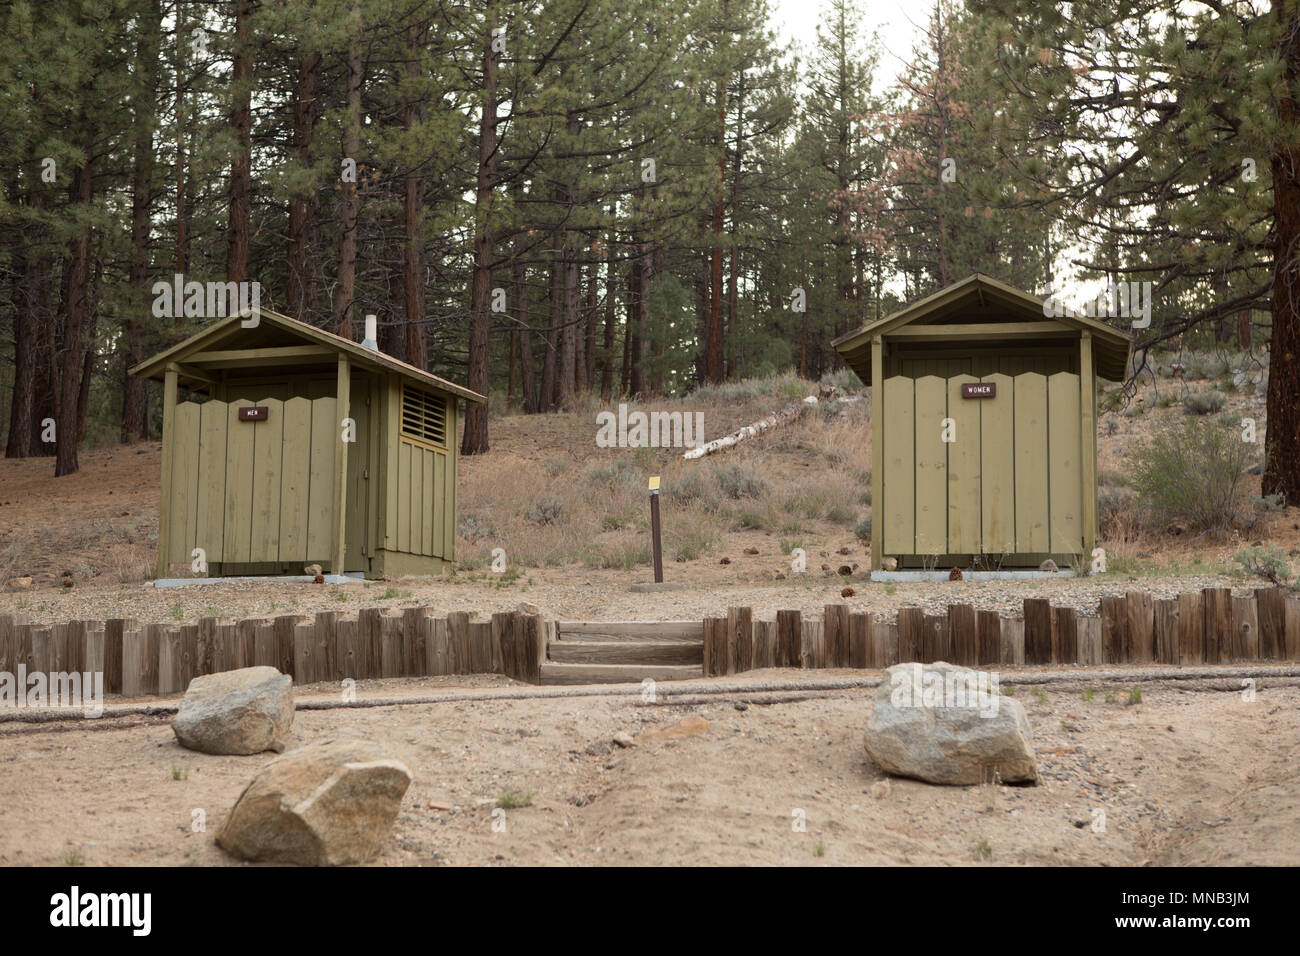 Men and women wood built campground restrooms - Stock Image